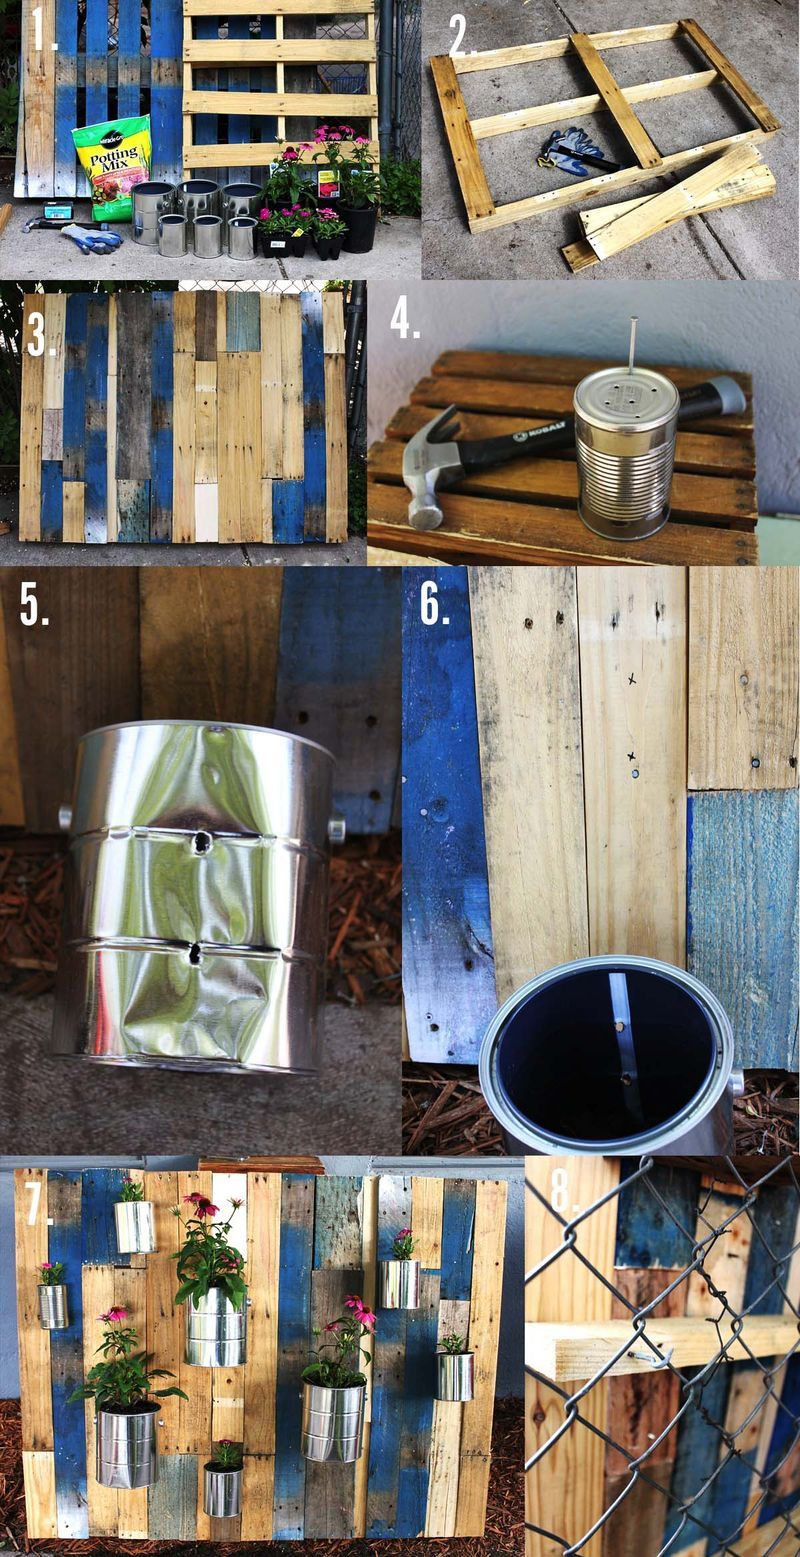 Vertical recycled pallet garden with repurposed tin cans wall art